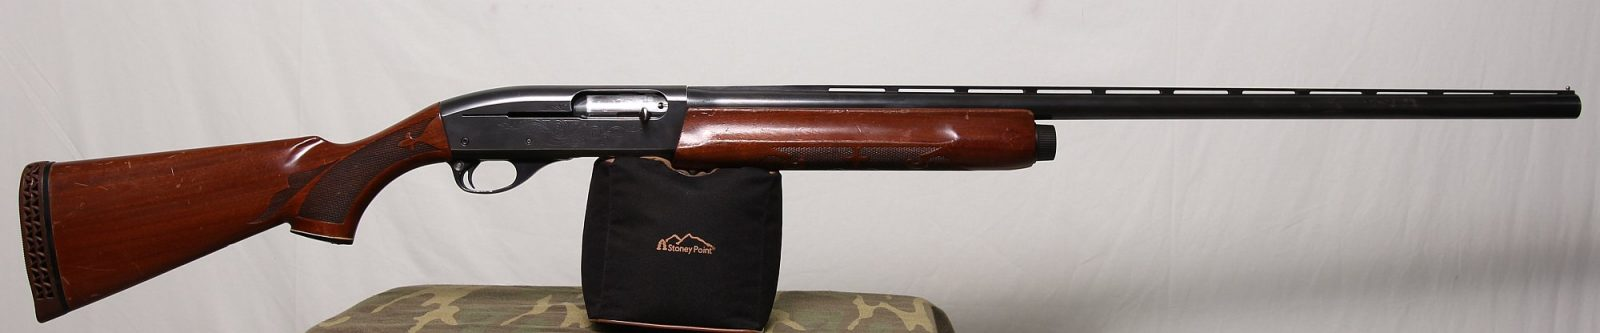 Remington 1100 Review | The Hunting Gear Guy